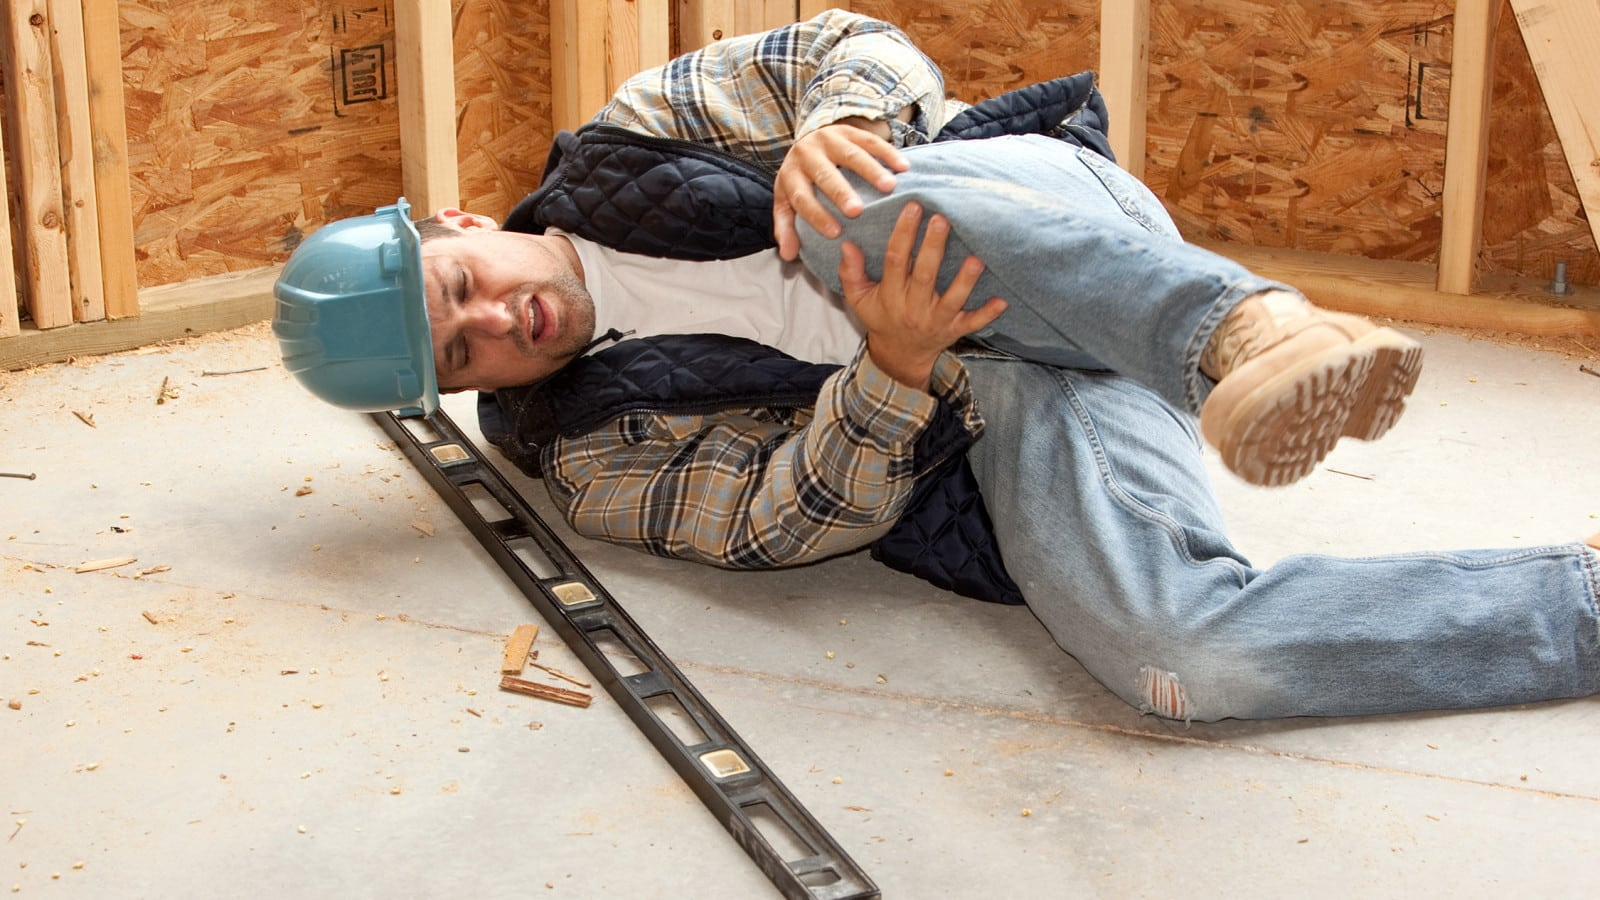 Construction Worker Knee Injury Stock Photo